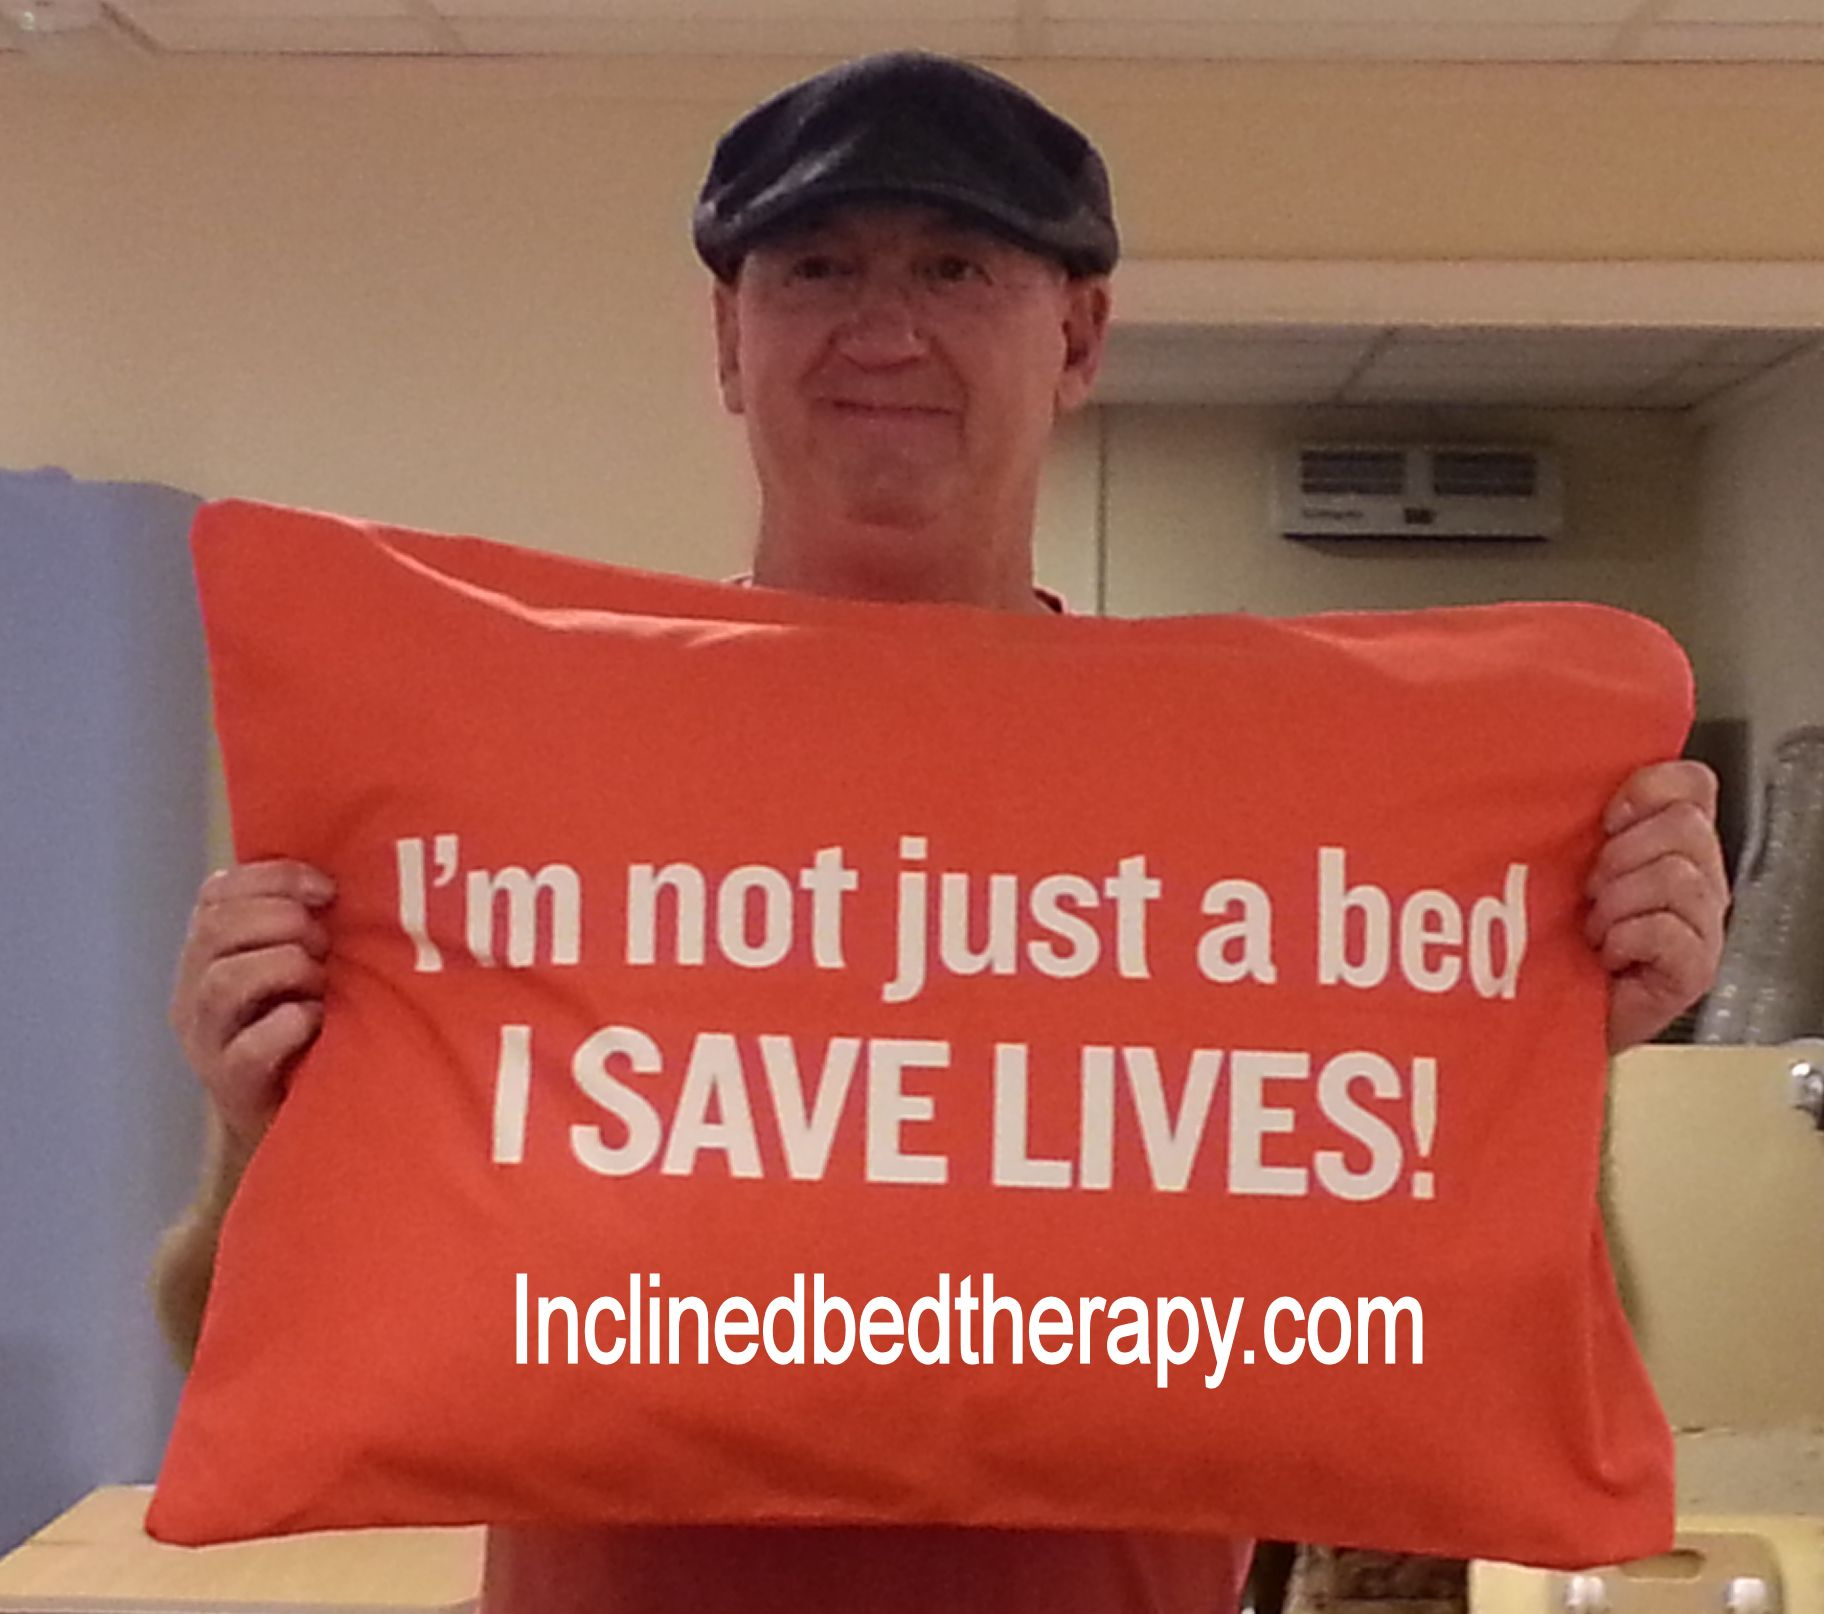 inclined_bed_therapy_saves_lives.jpg - 229.56 kB